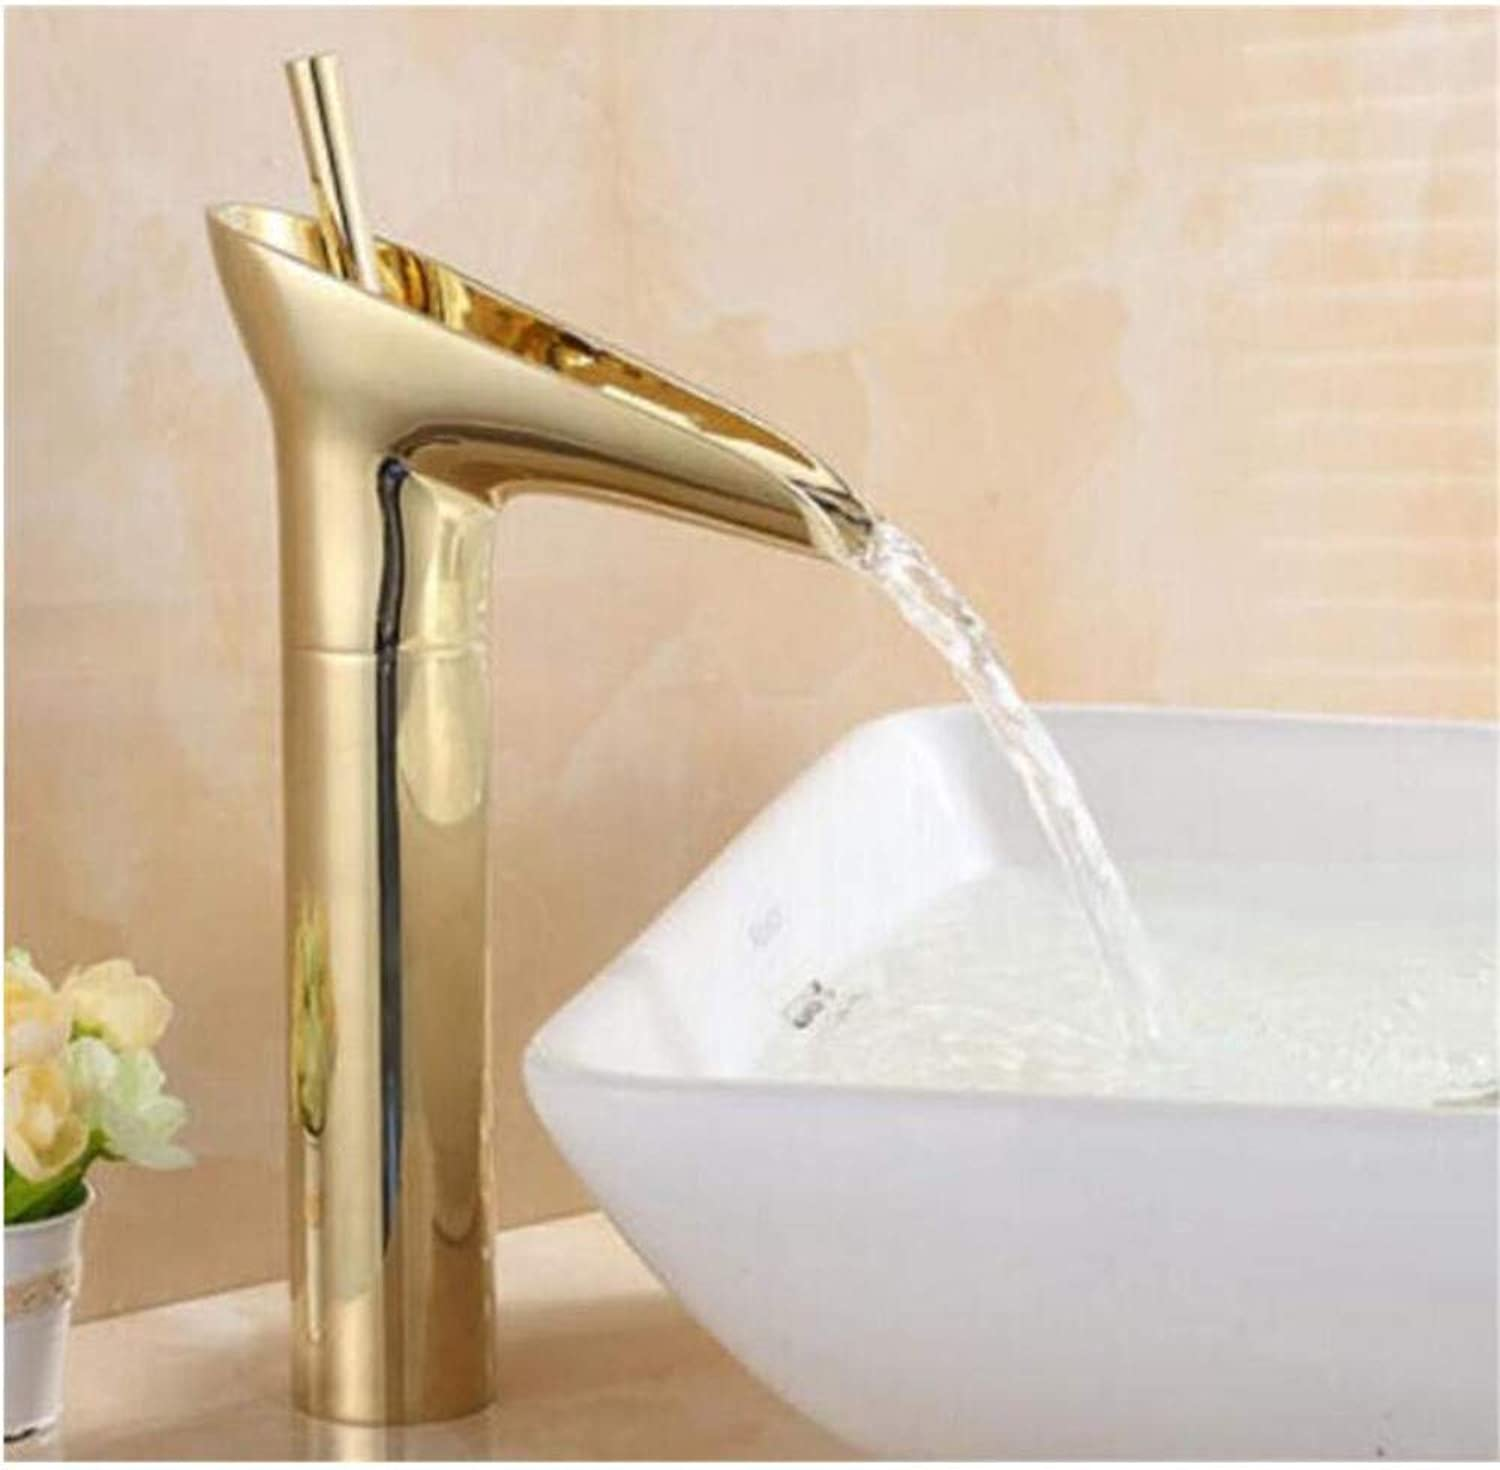 Brass Wall Faucet Chrome Brass Faucet Faucet Dual Handle in-Wall Tub Sink Mixer Taps Chrome Finished